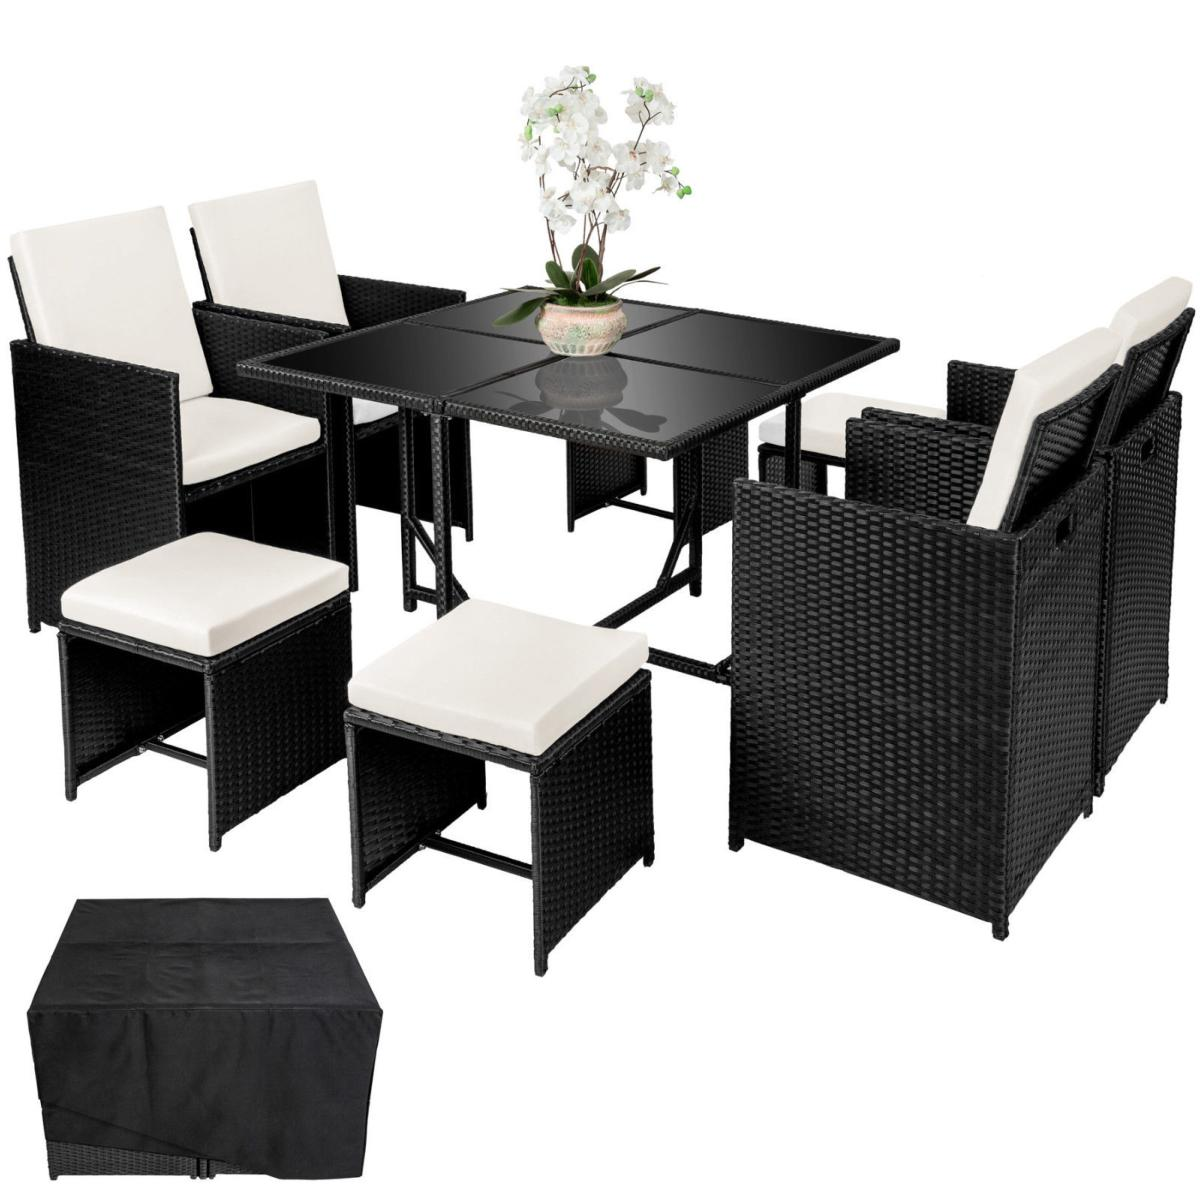 salon de jardin noir r sine tress e 8 personnes. Black Bedroom Furniture Sets. Home Design Ideas